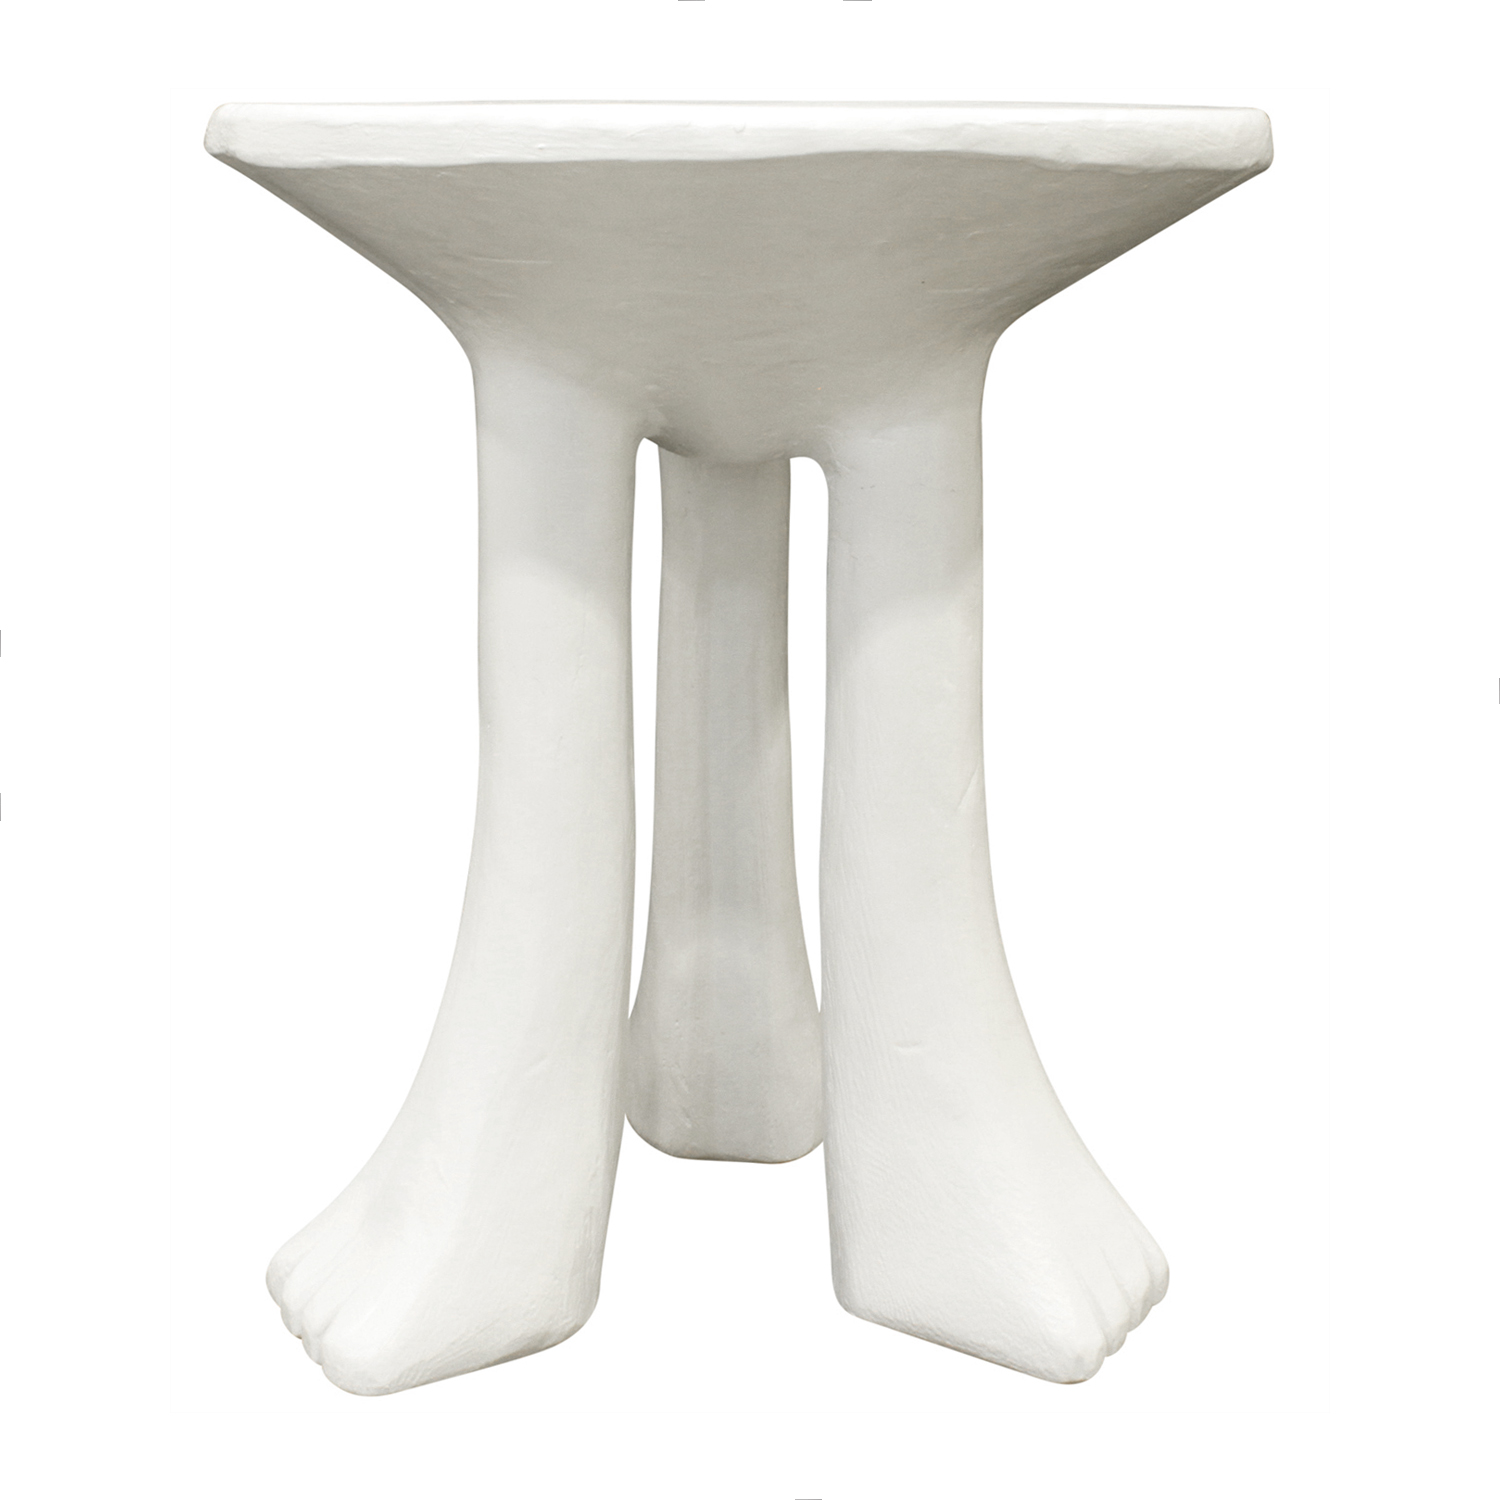 Dickinson 175 lrg African Table endtable195 frnt 2 legs.jpg